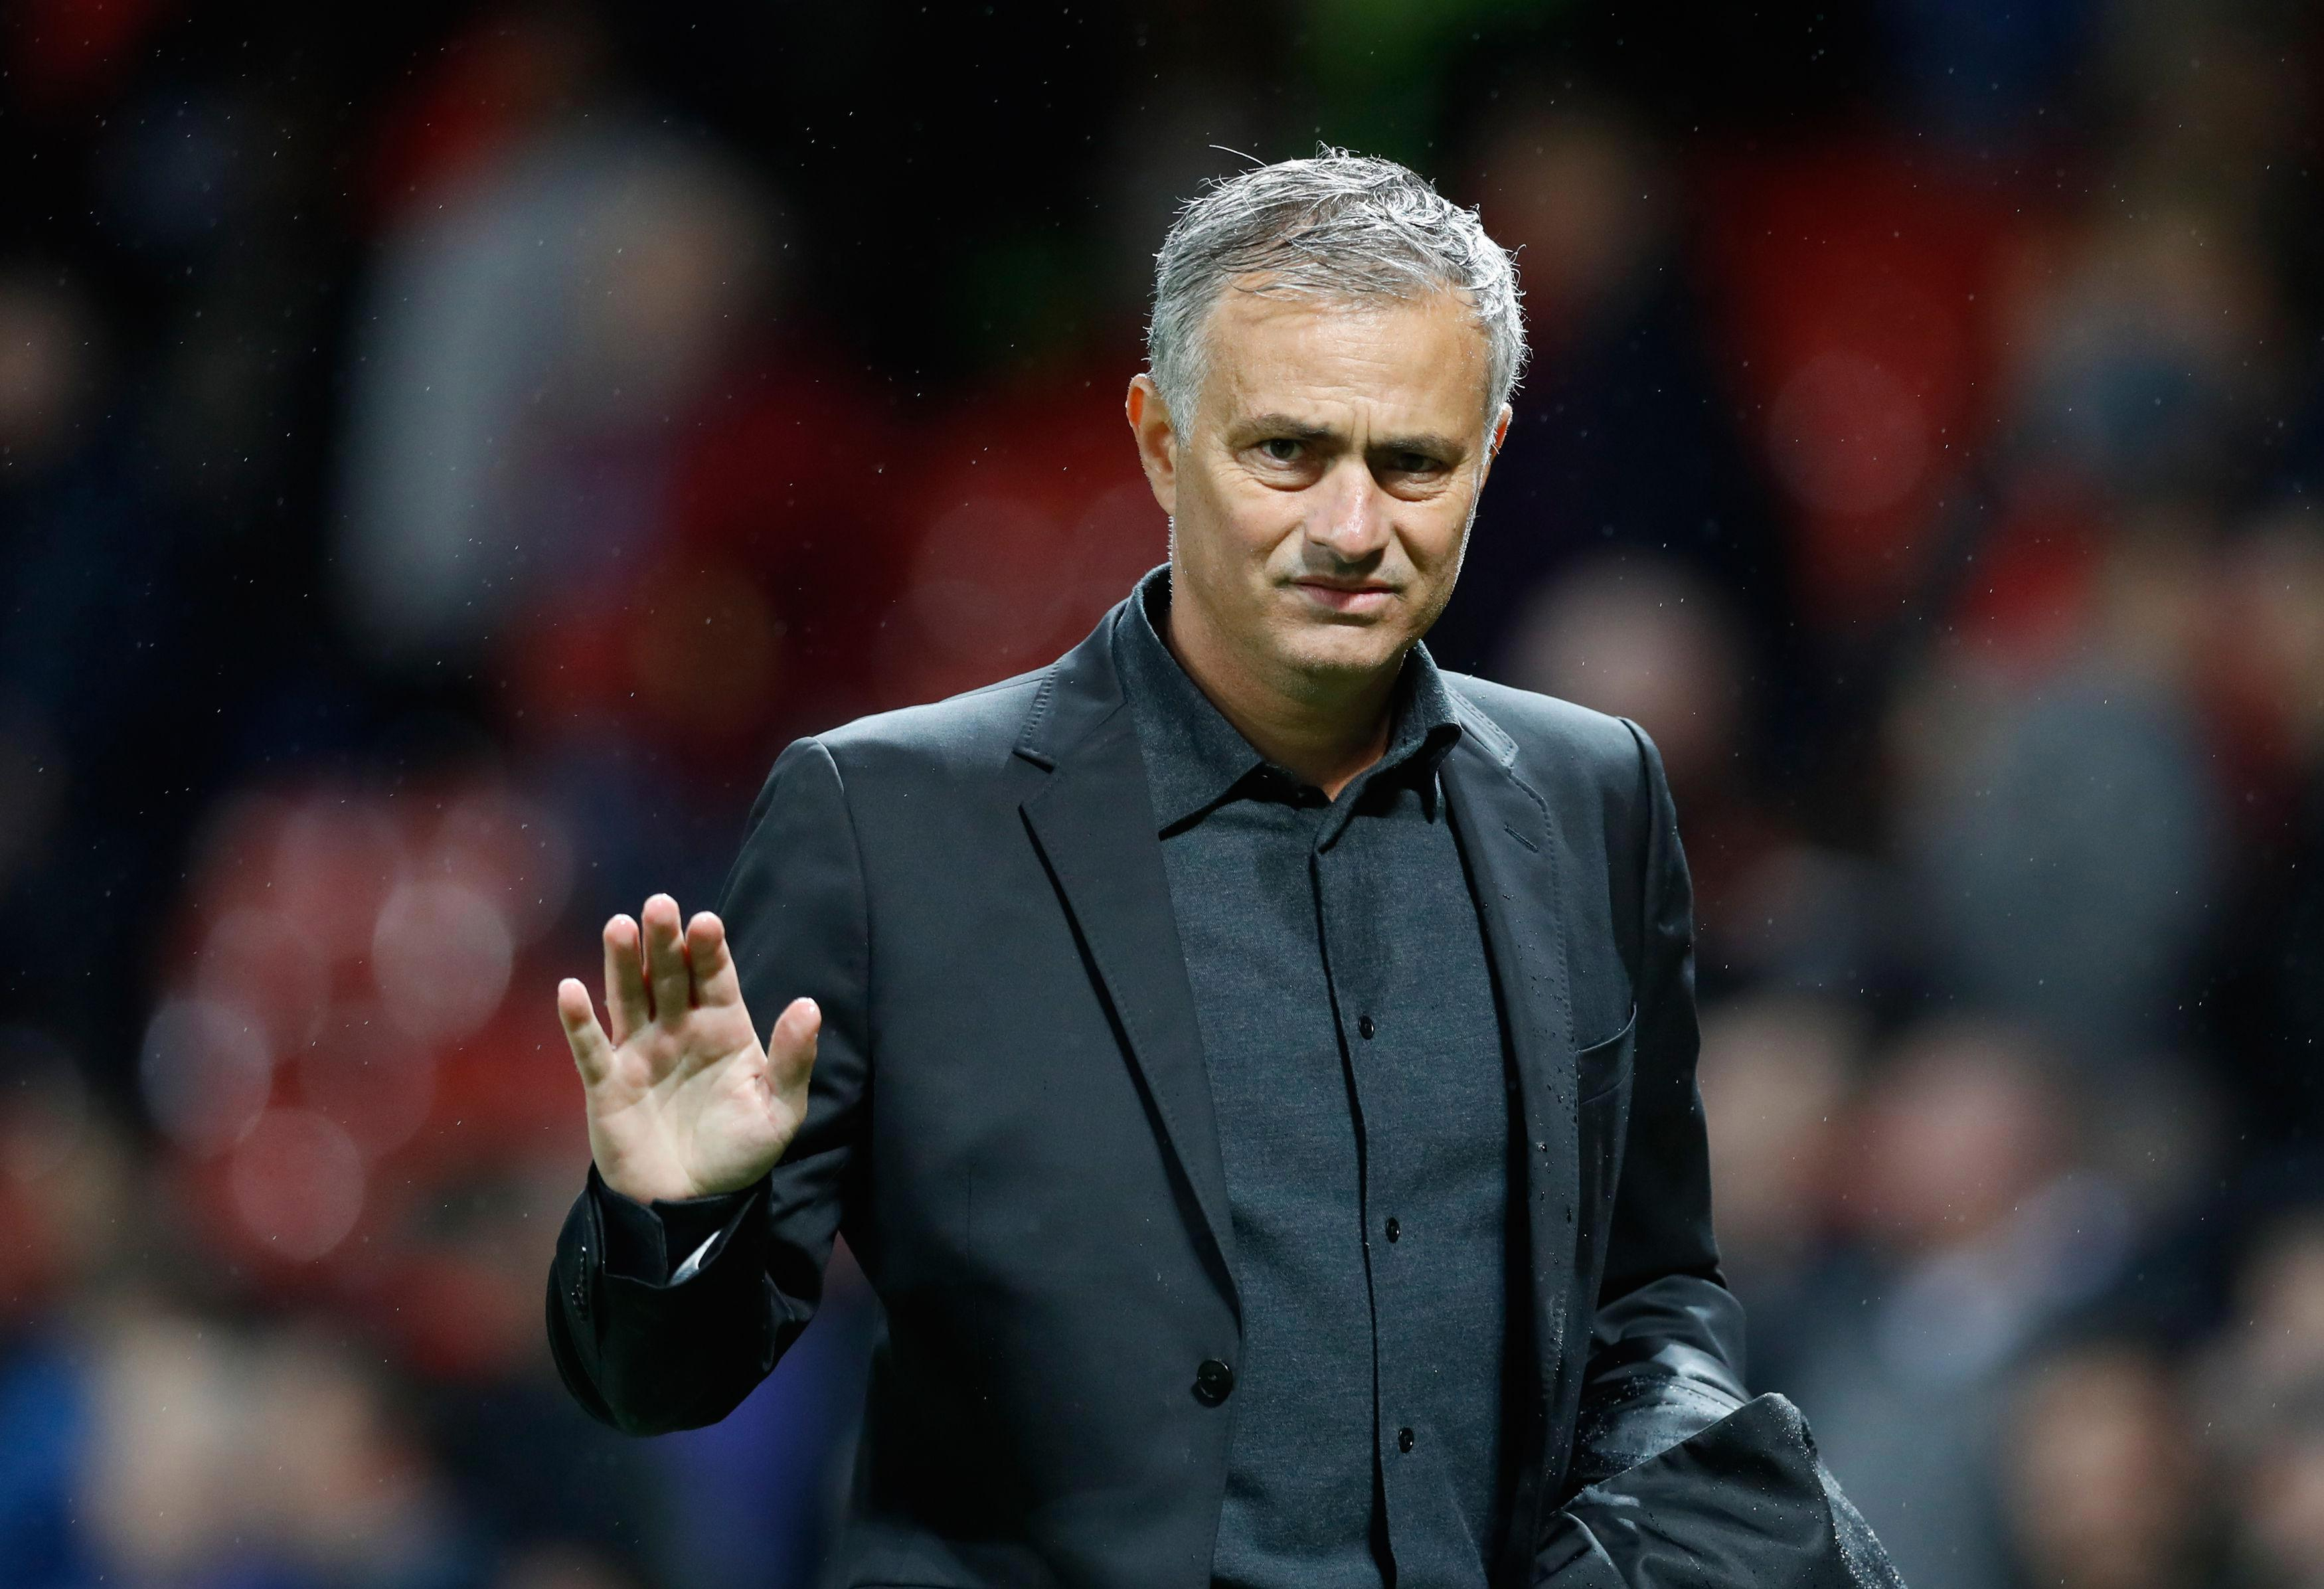 You must be semi-special if the Special One wants you